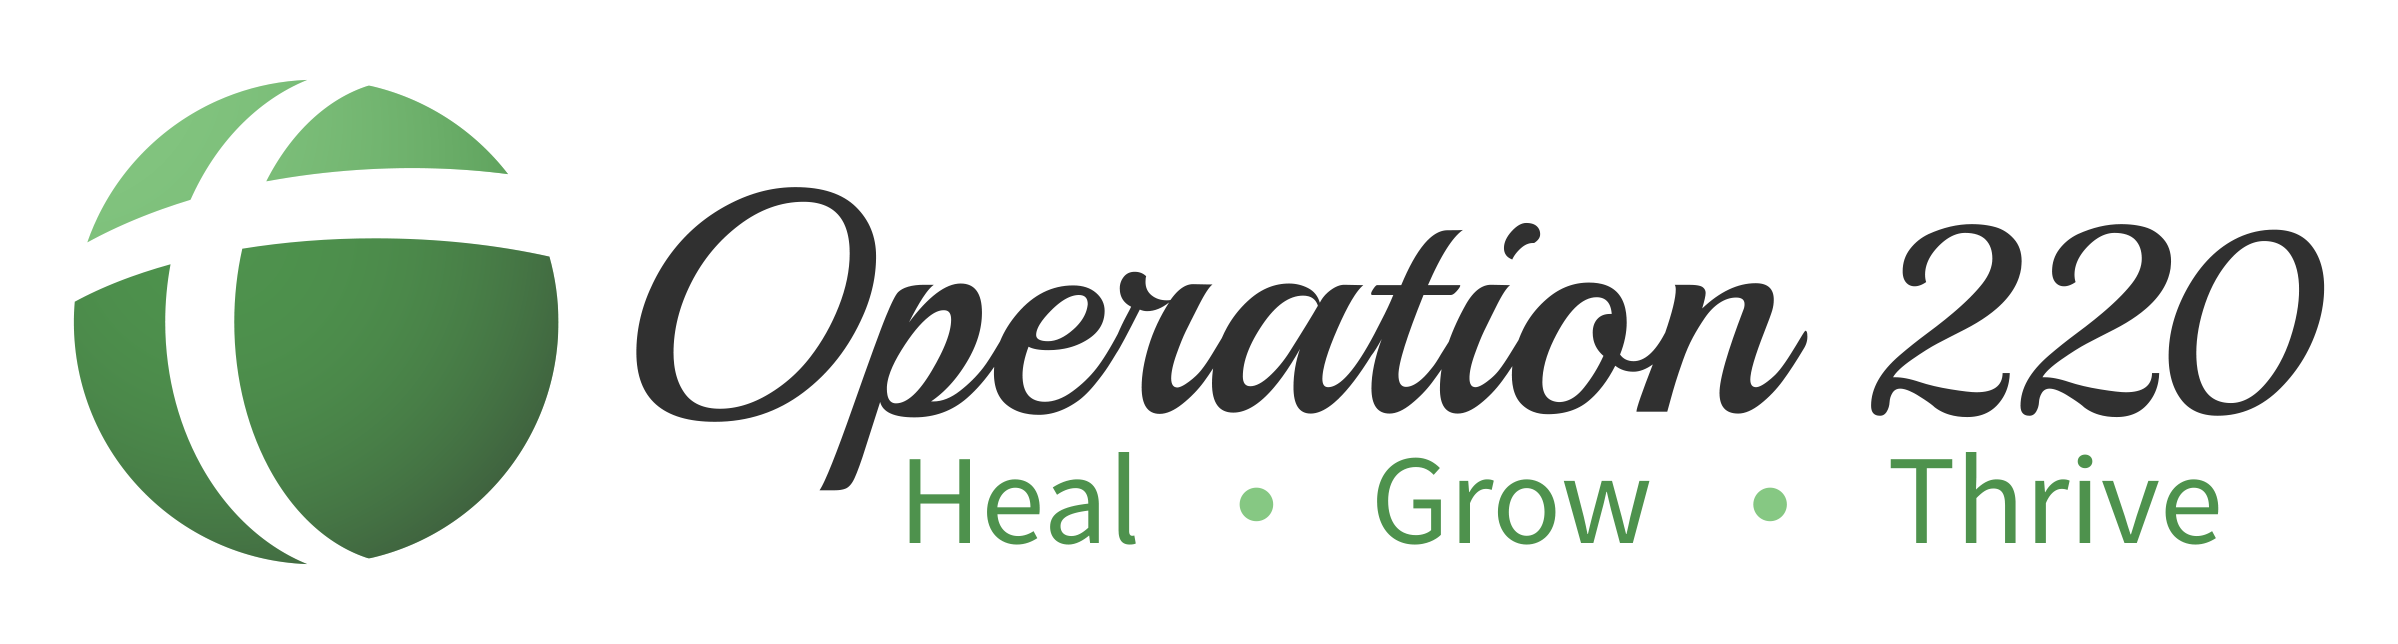 Operation 220 logo: Heal, Grow, Thrive